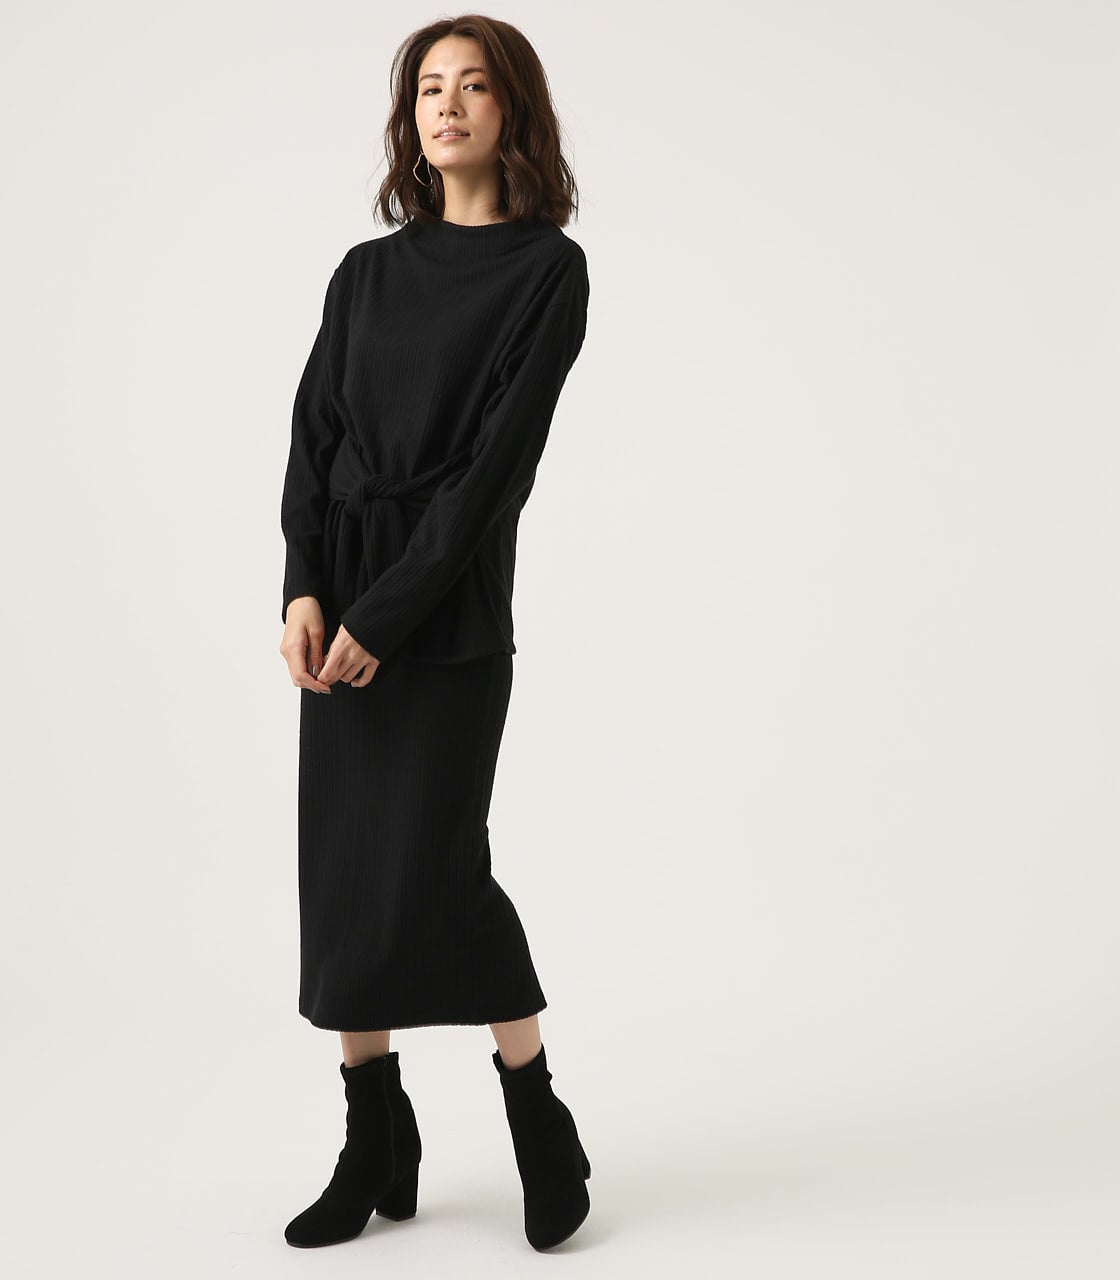 【AZUL BY MOUSSY】BLUSHED TIGHT MIDI SKIRT 詳細画像 BLK 4